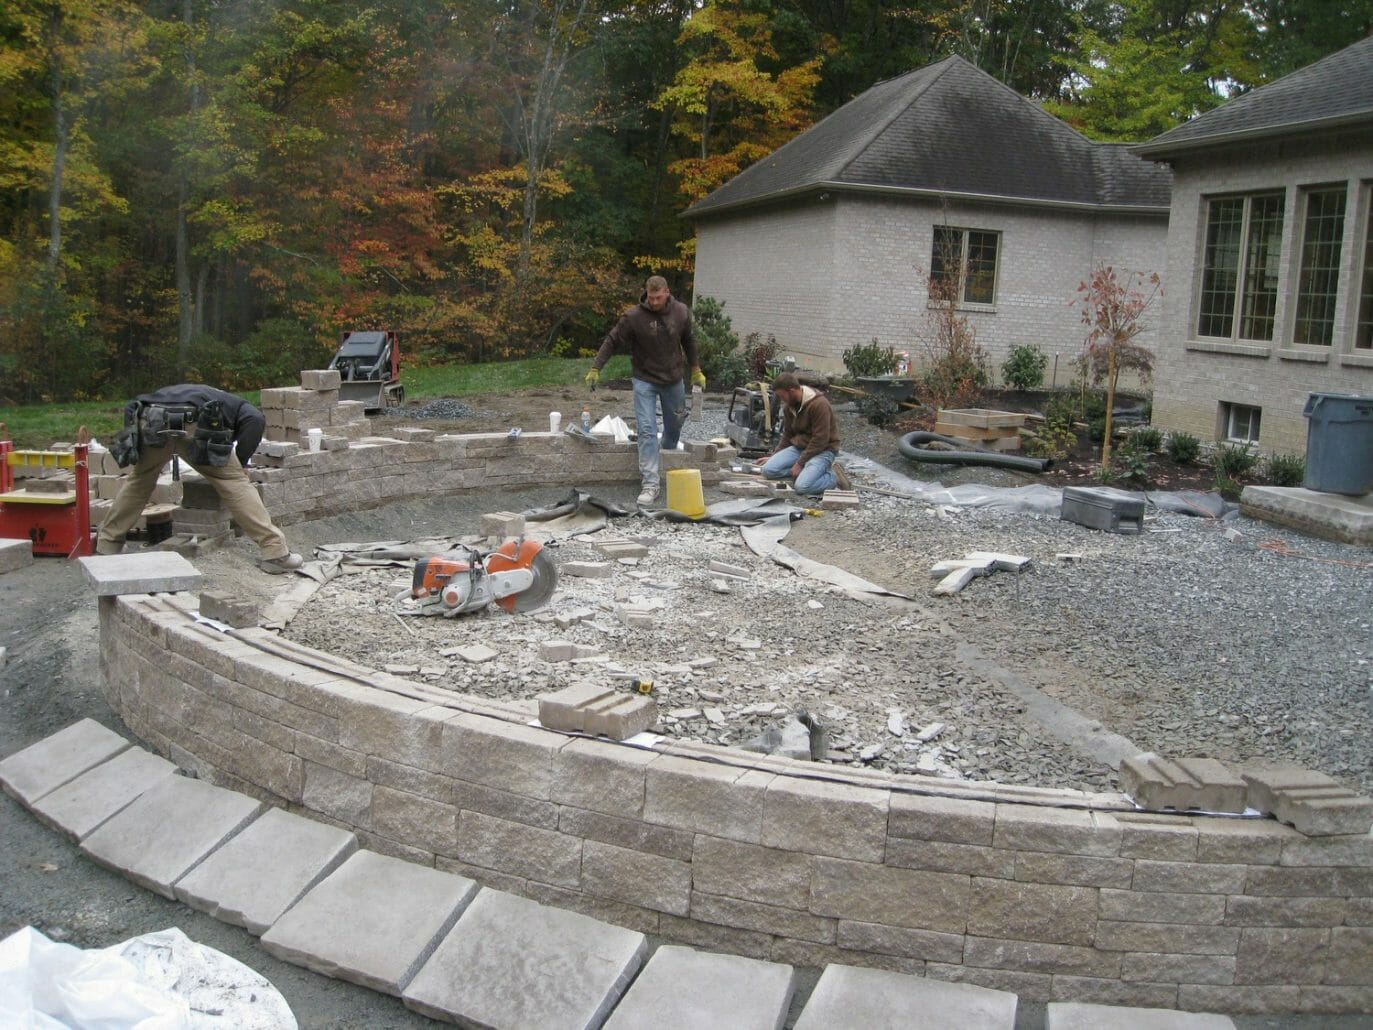 Wynantskill NY hardscape project installation 1373x1030 - Landscape Plan Installation and Project Management